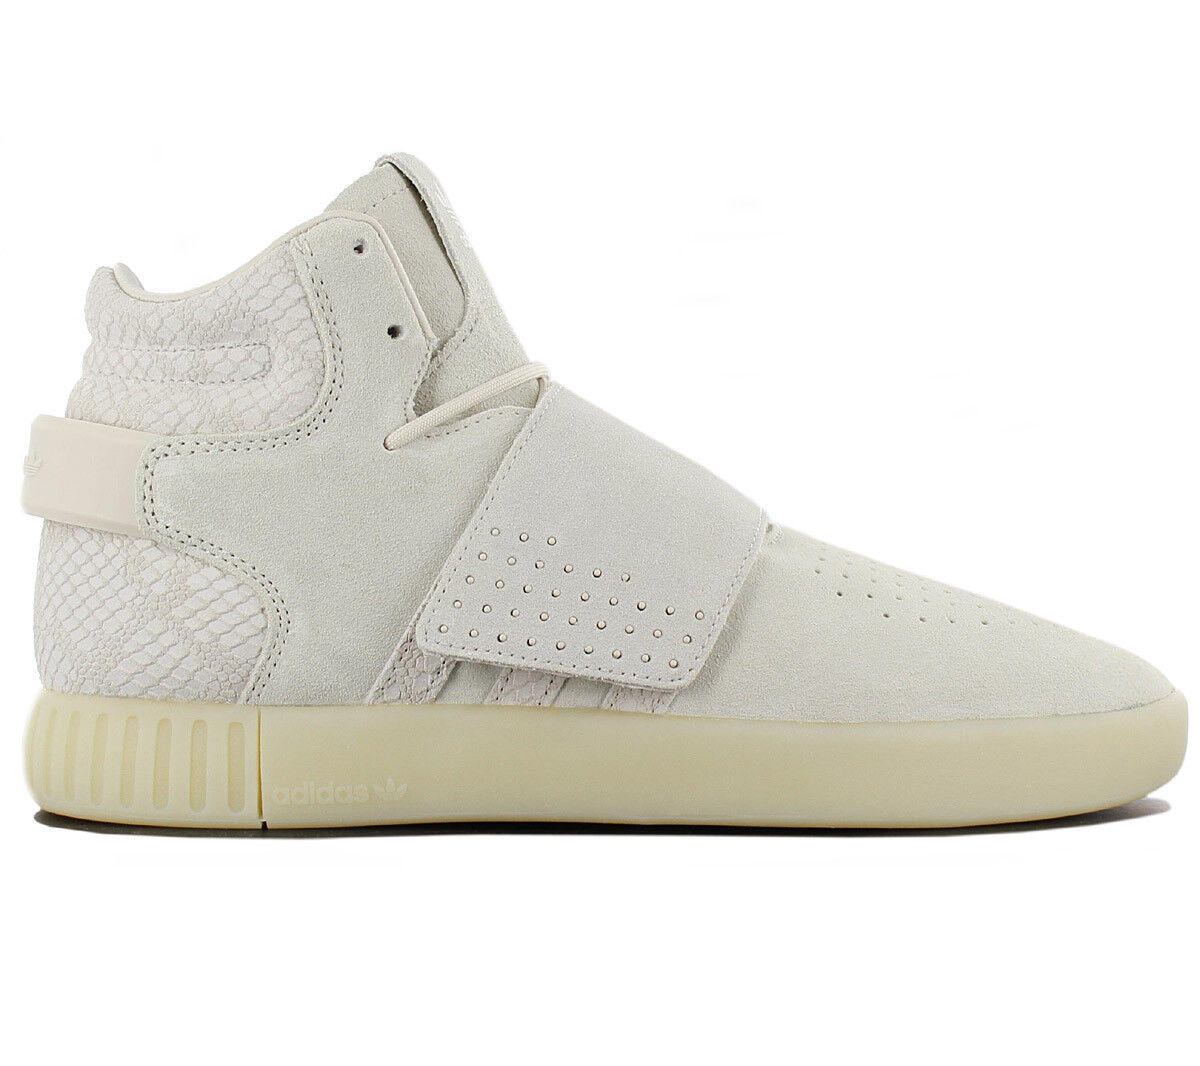 Adidas Originals Tubular Invader Strap Men's Sneakers shoes Leather Bb8943 New